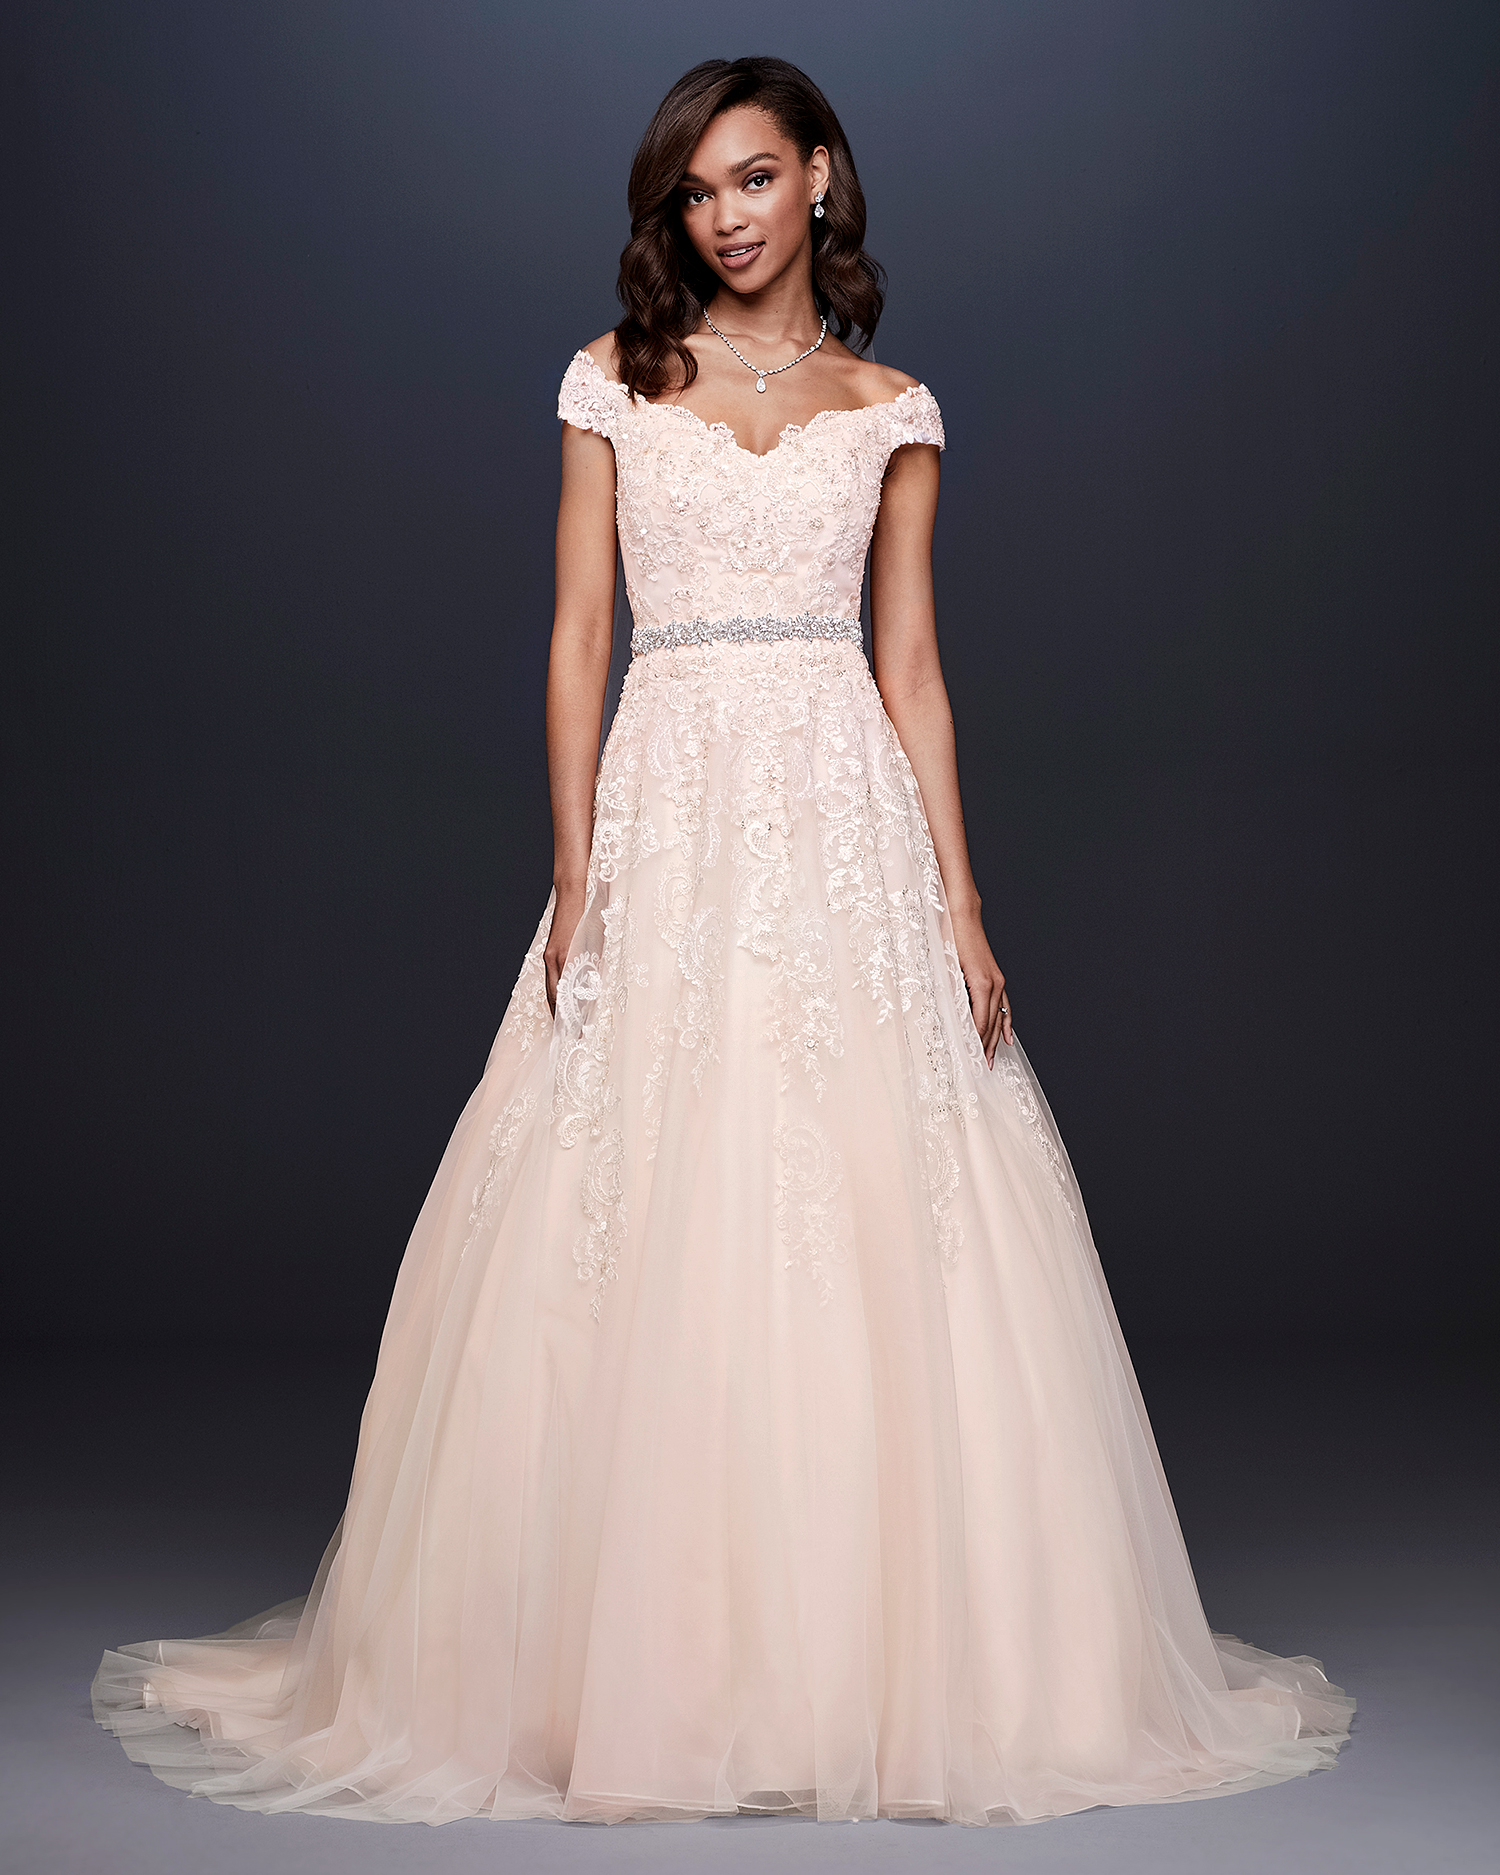 davids bridal wedding dress fall 2019 blush a-line with cap sleeves